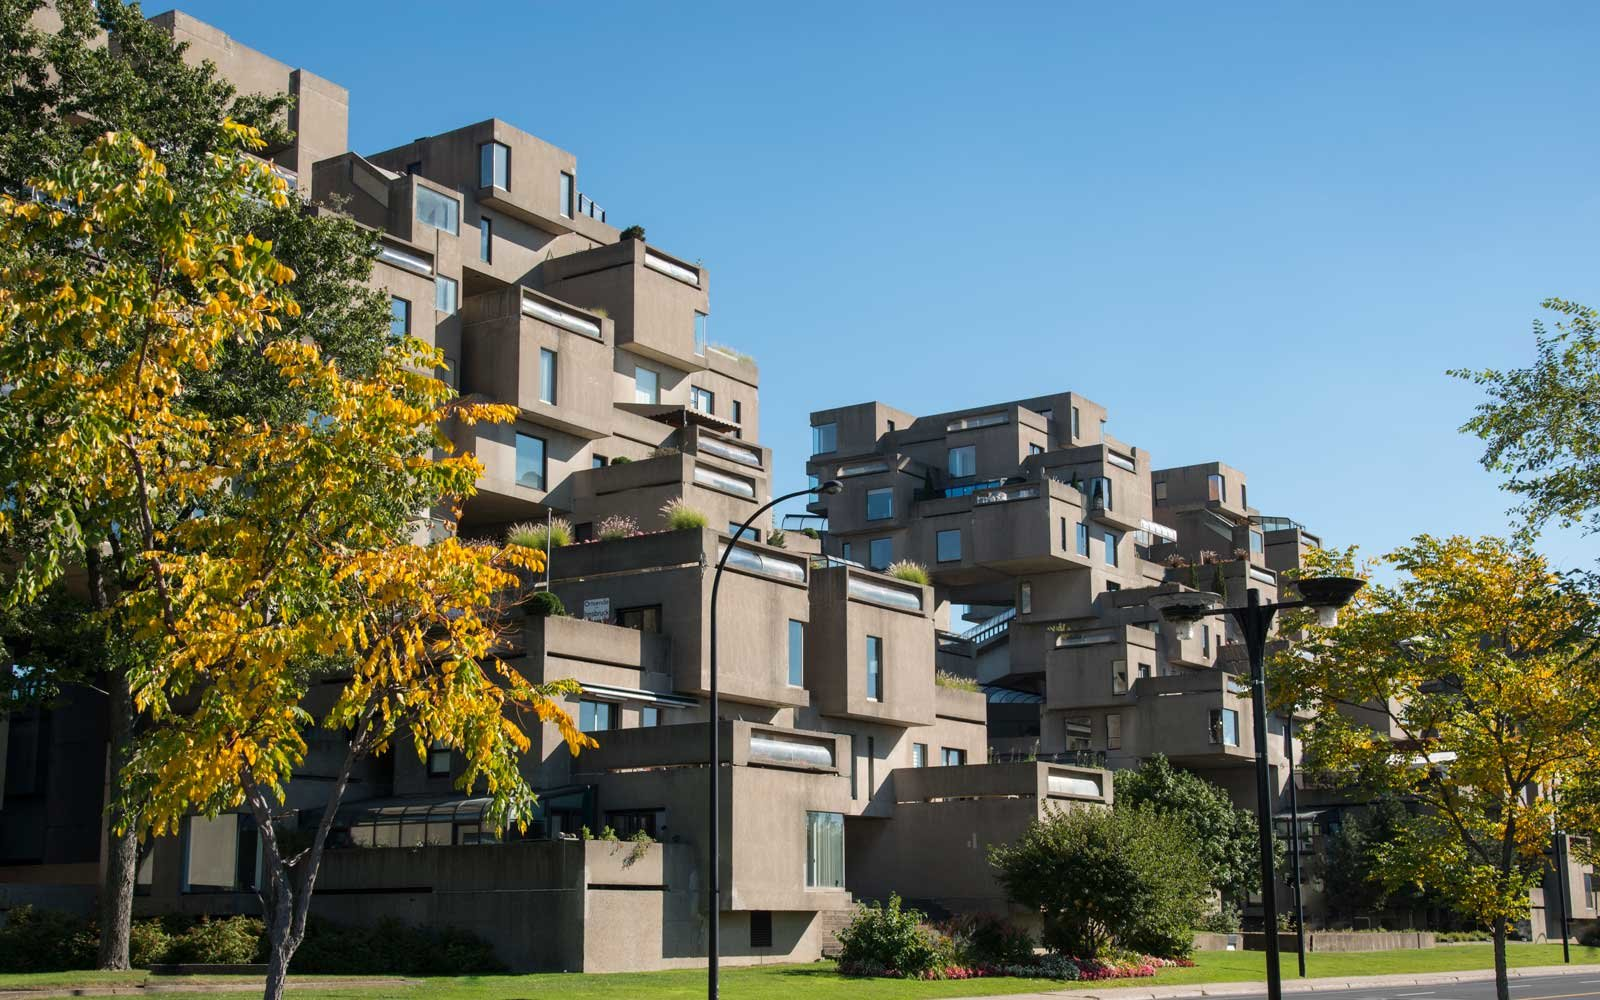 Habitat 67 in Montreal city center